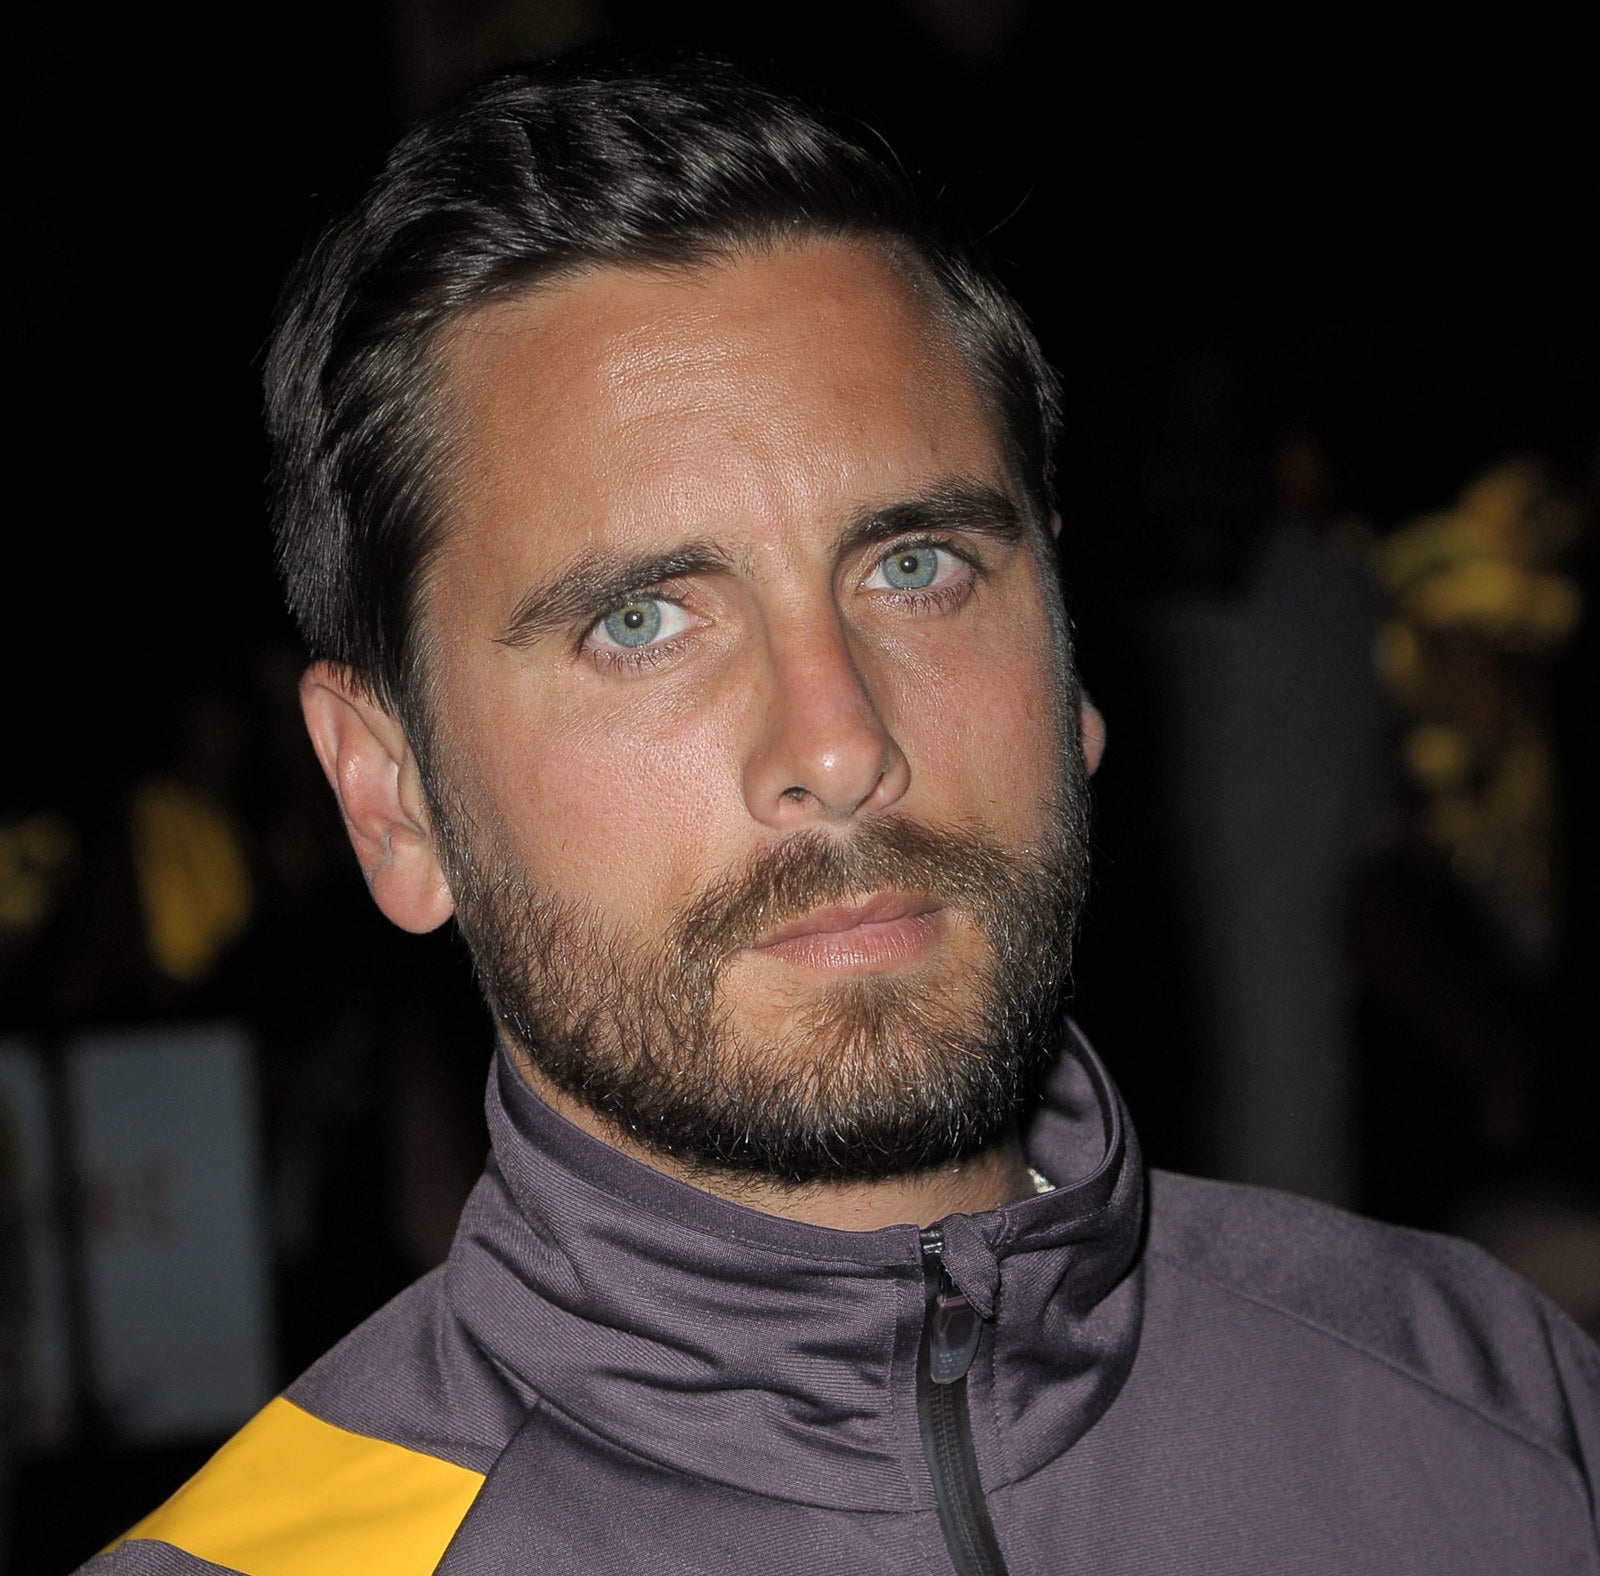 A certain Mr Scott Disick.